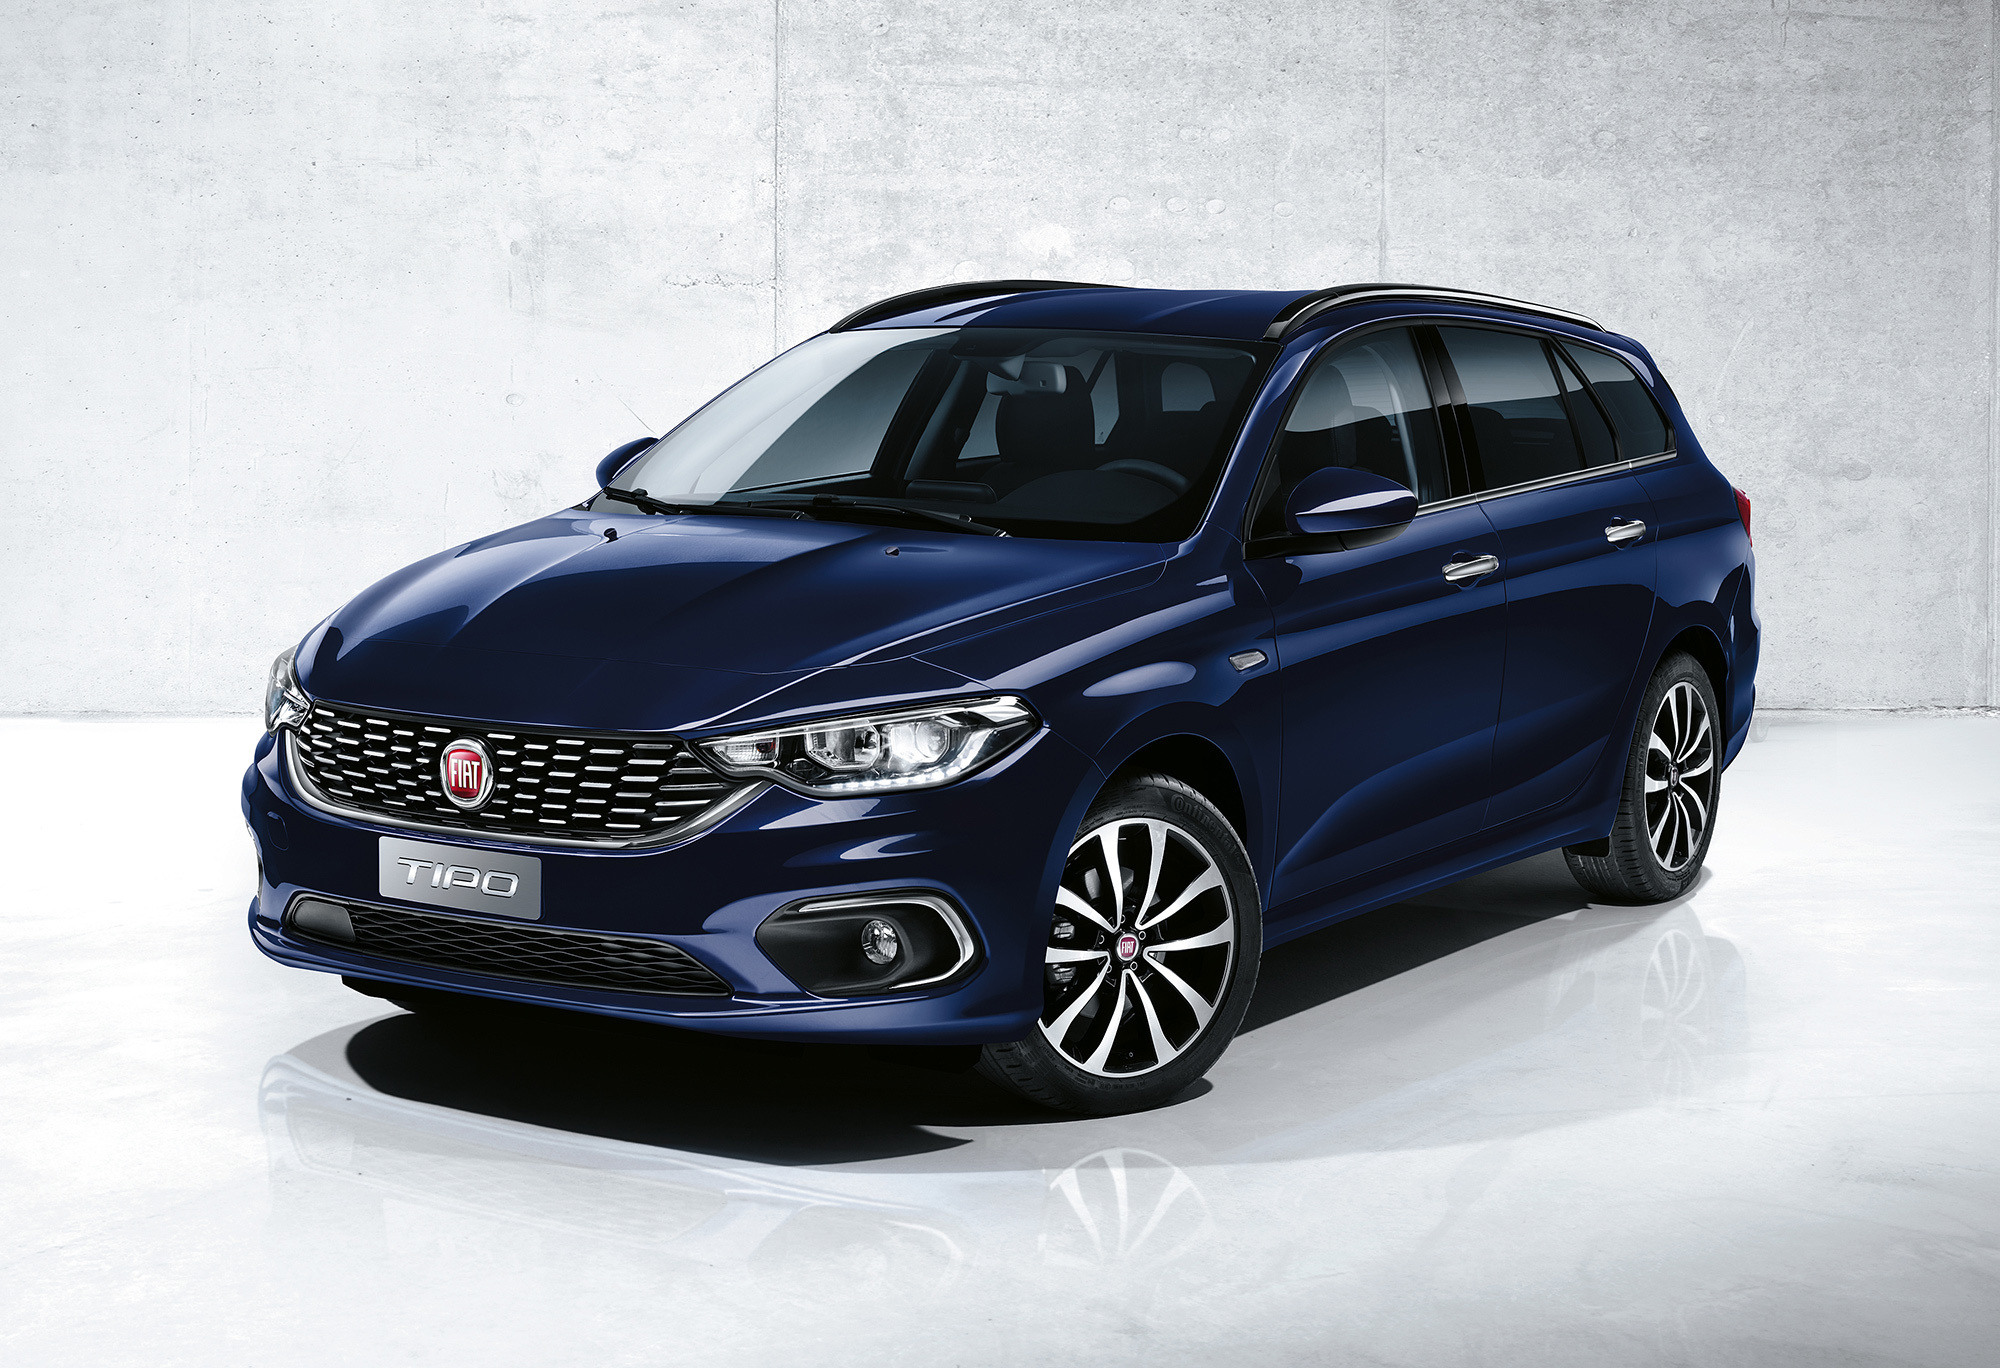 Fiat Tipo Pictures